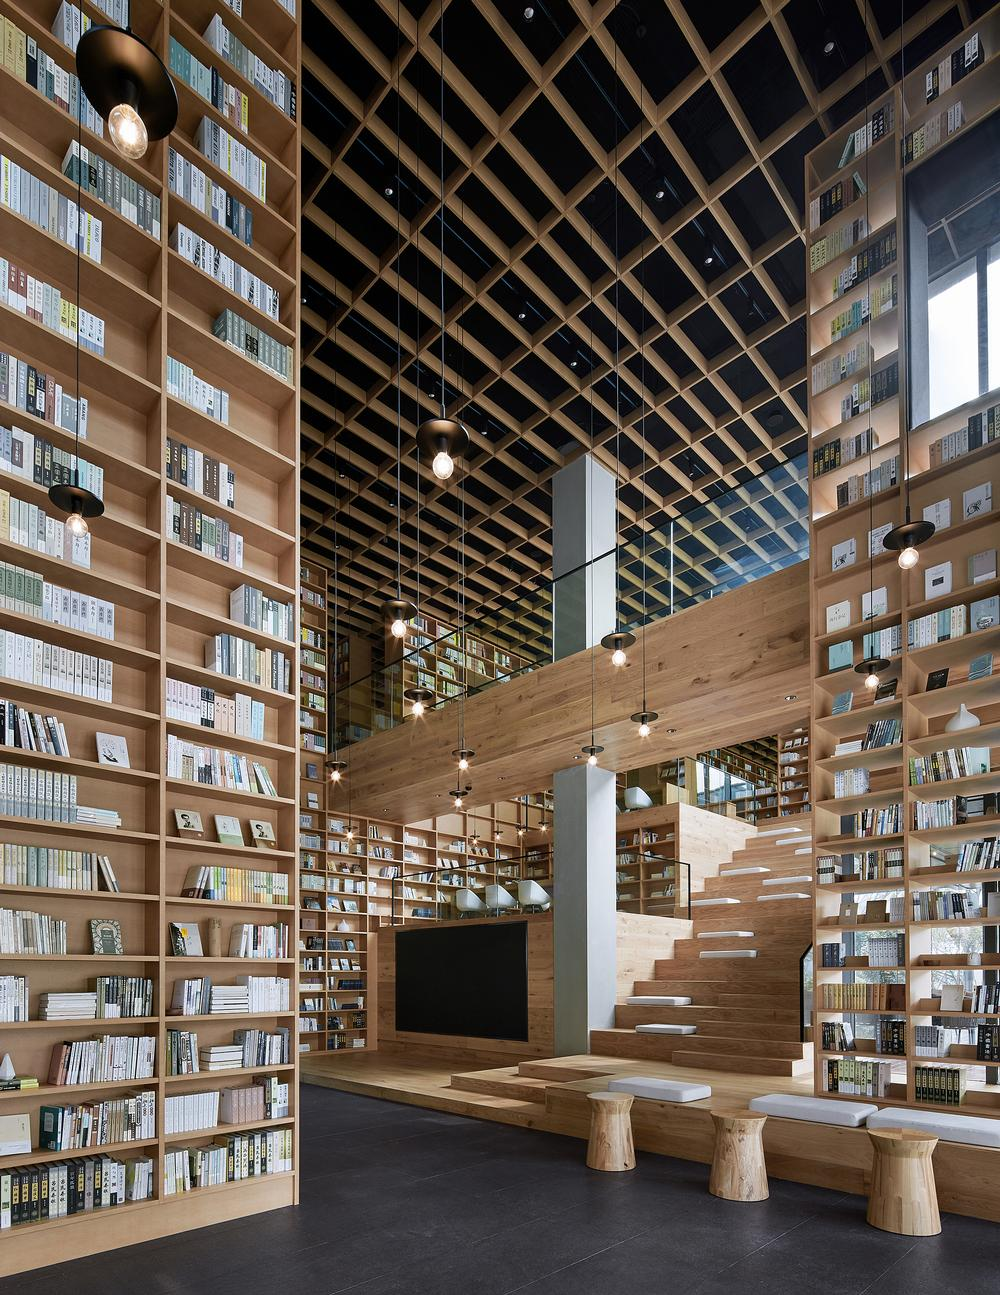 The bookshelves stretch up to 10m-high, effectively acting as walls within the larger space